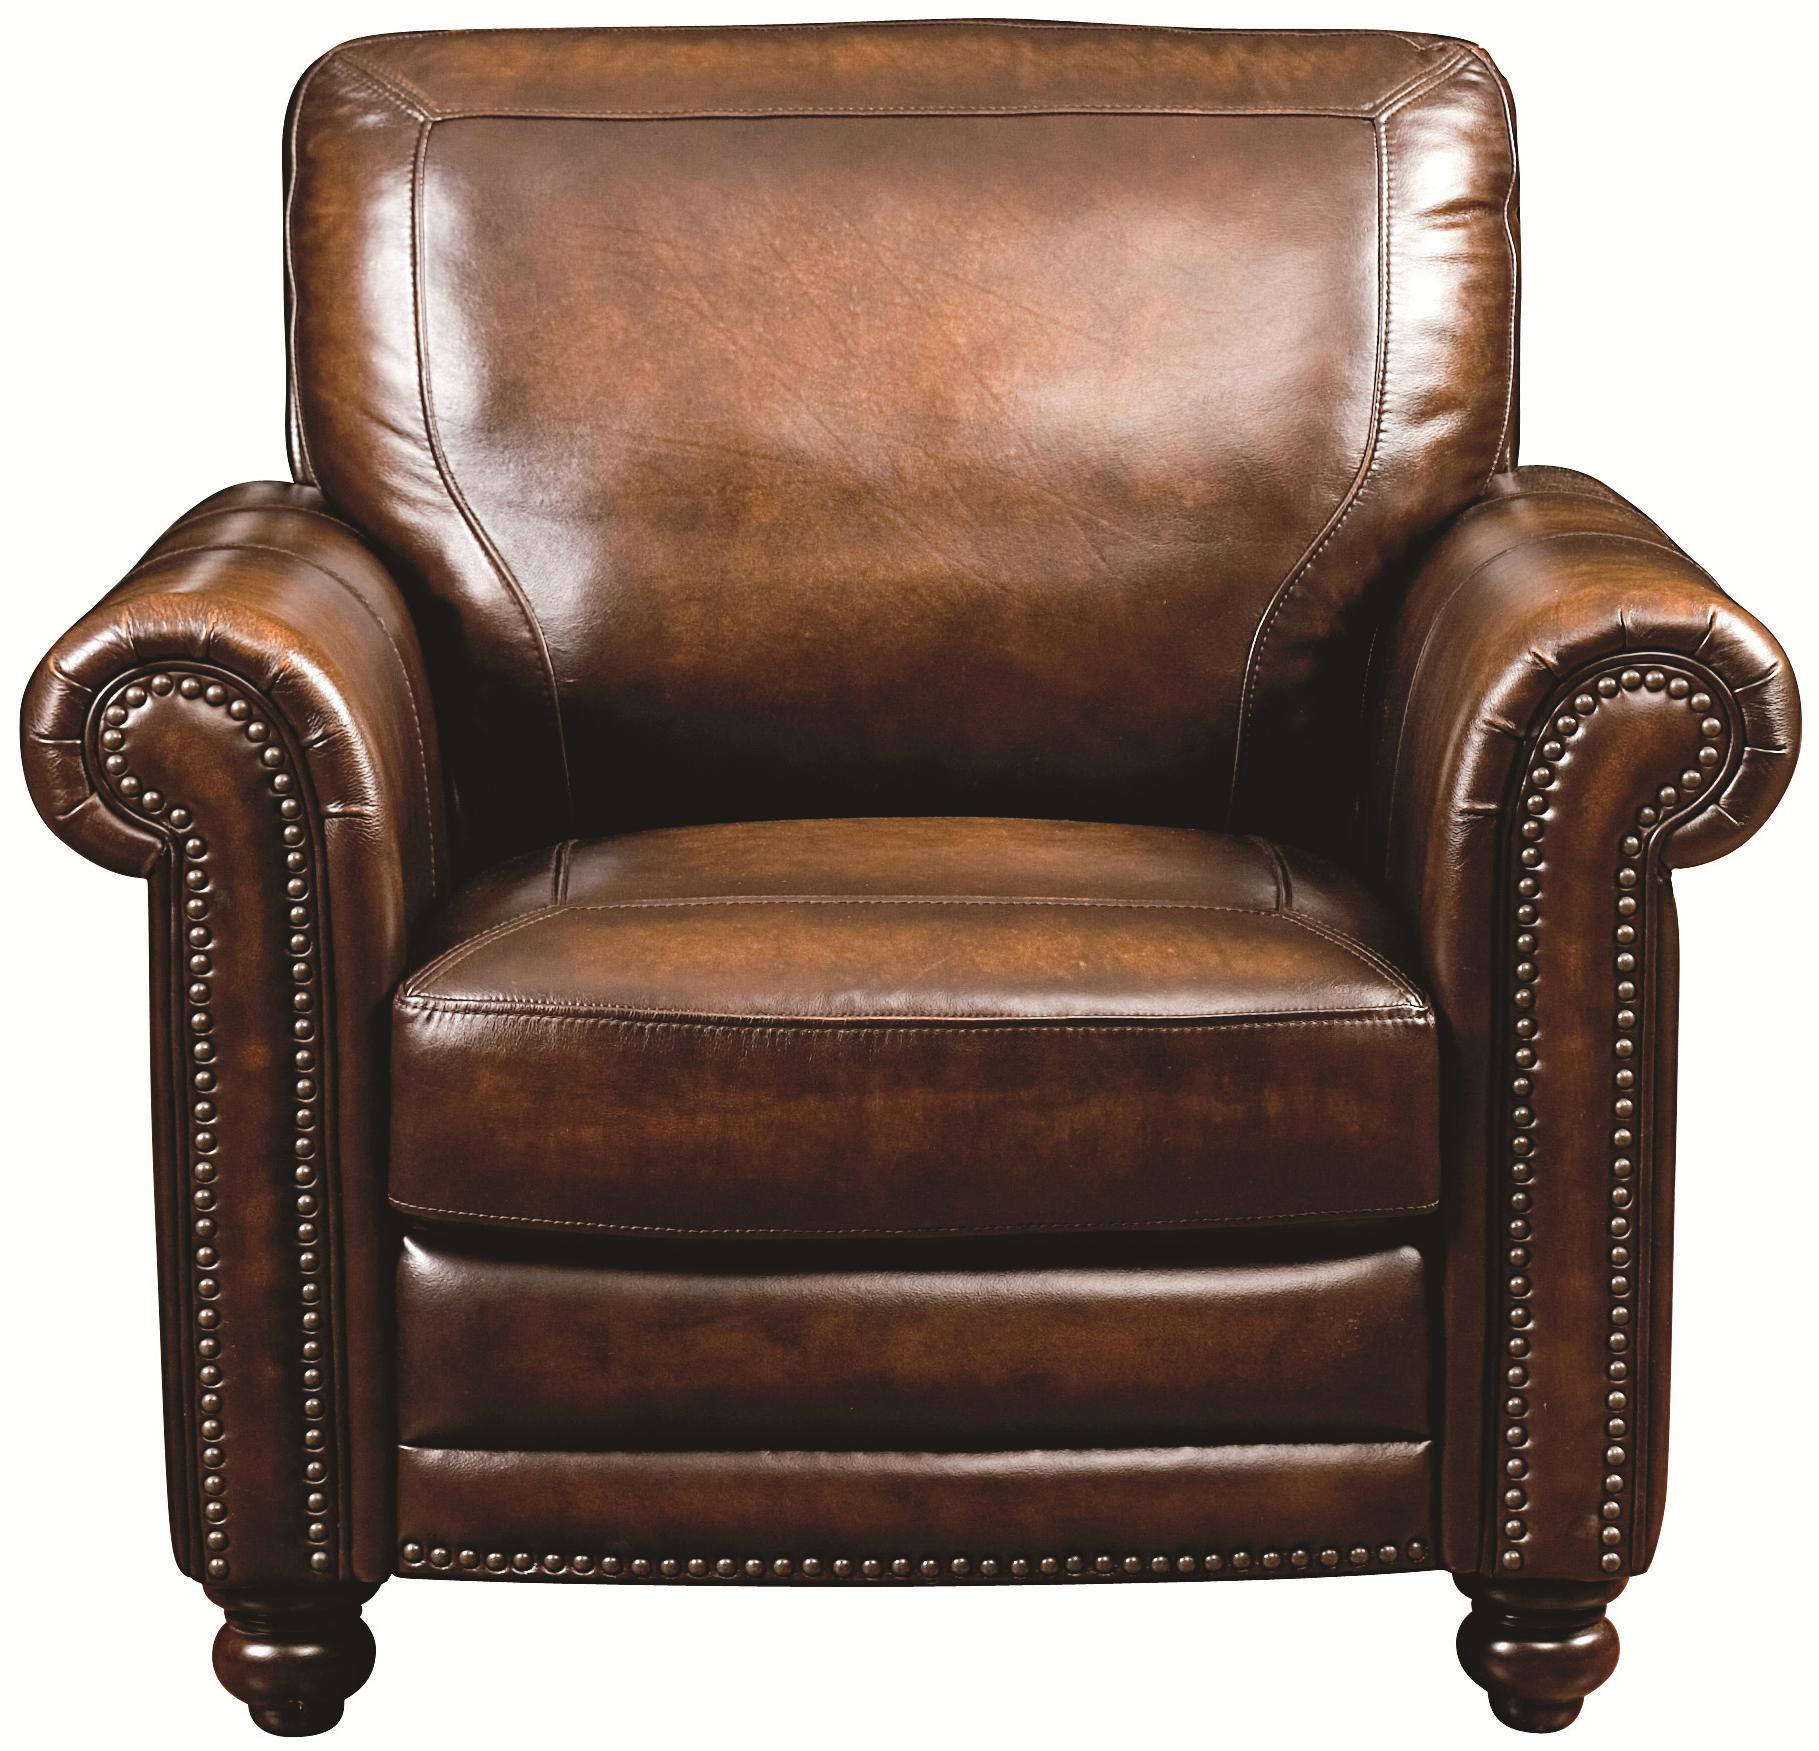 Bassett hamilton 3959 12s traditional leather chair with for Traditional leather sofas furniture